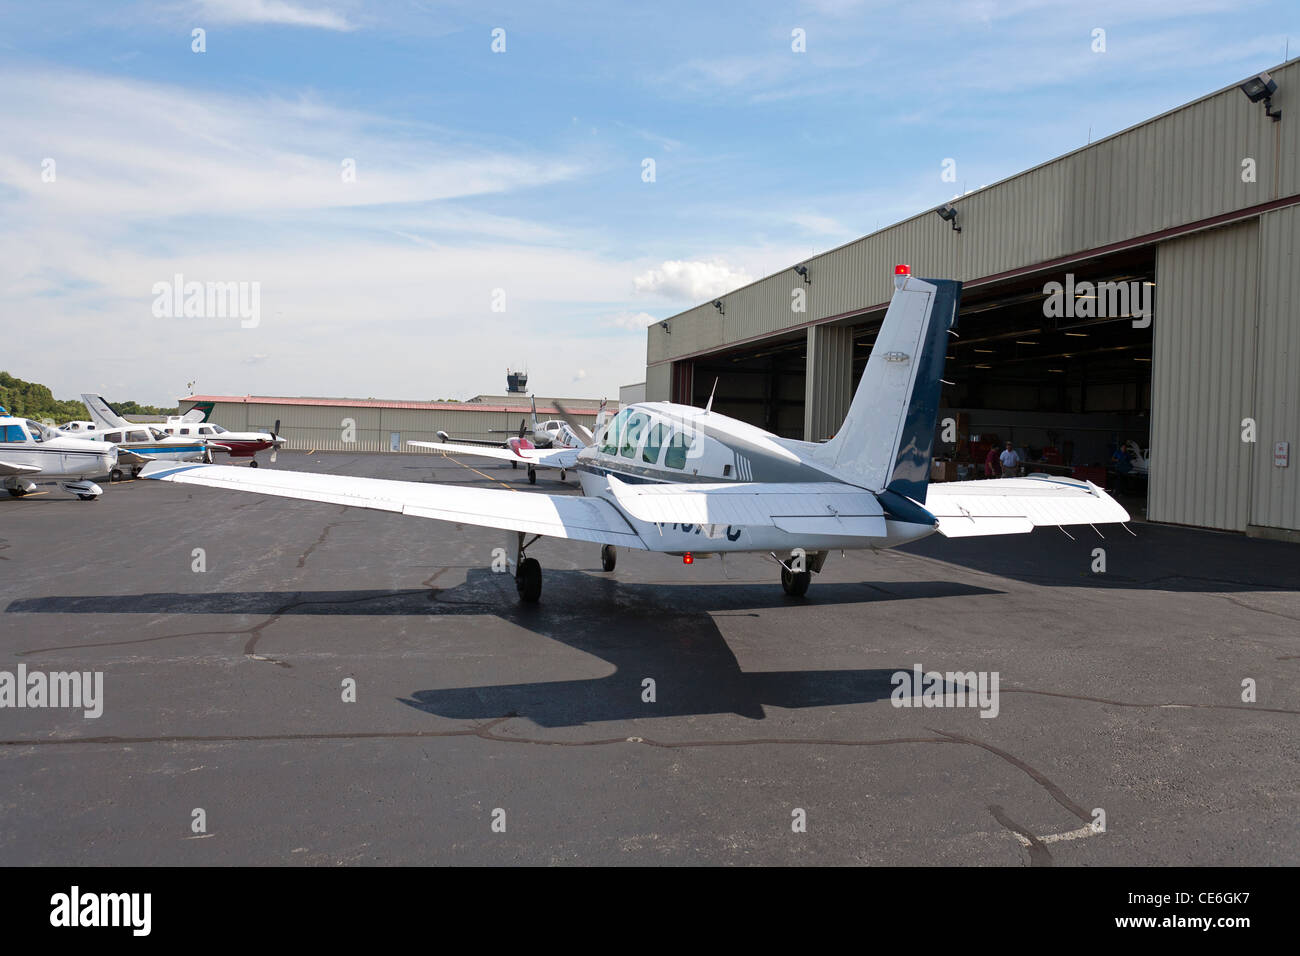 A group of airplanes sit on the ground outside an airplane hanger. - Stock Image